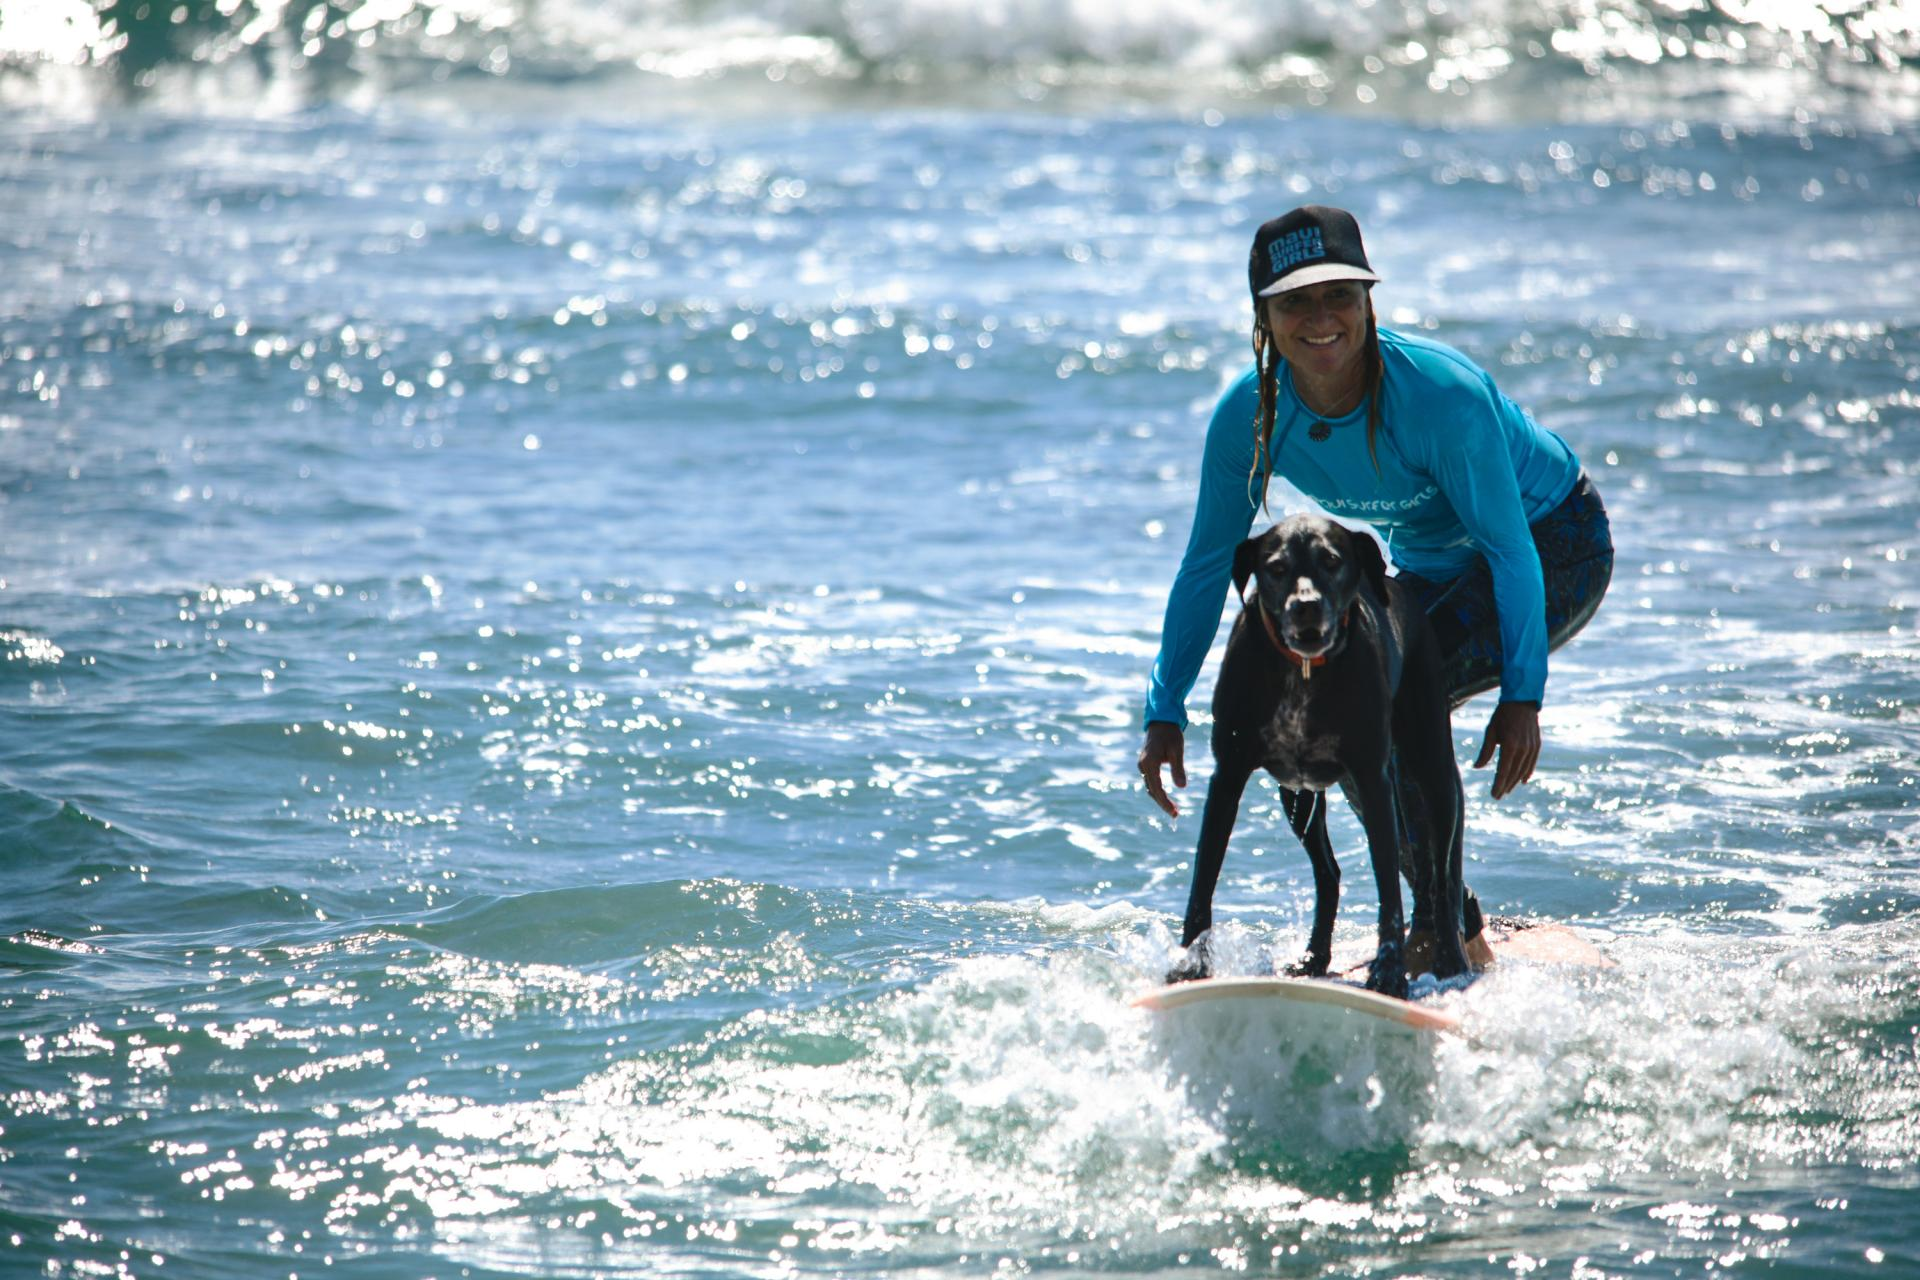 Healing Through Surfing